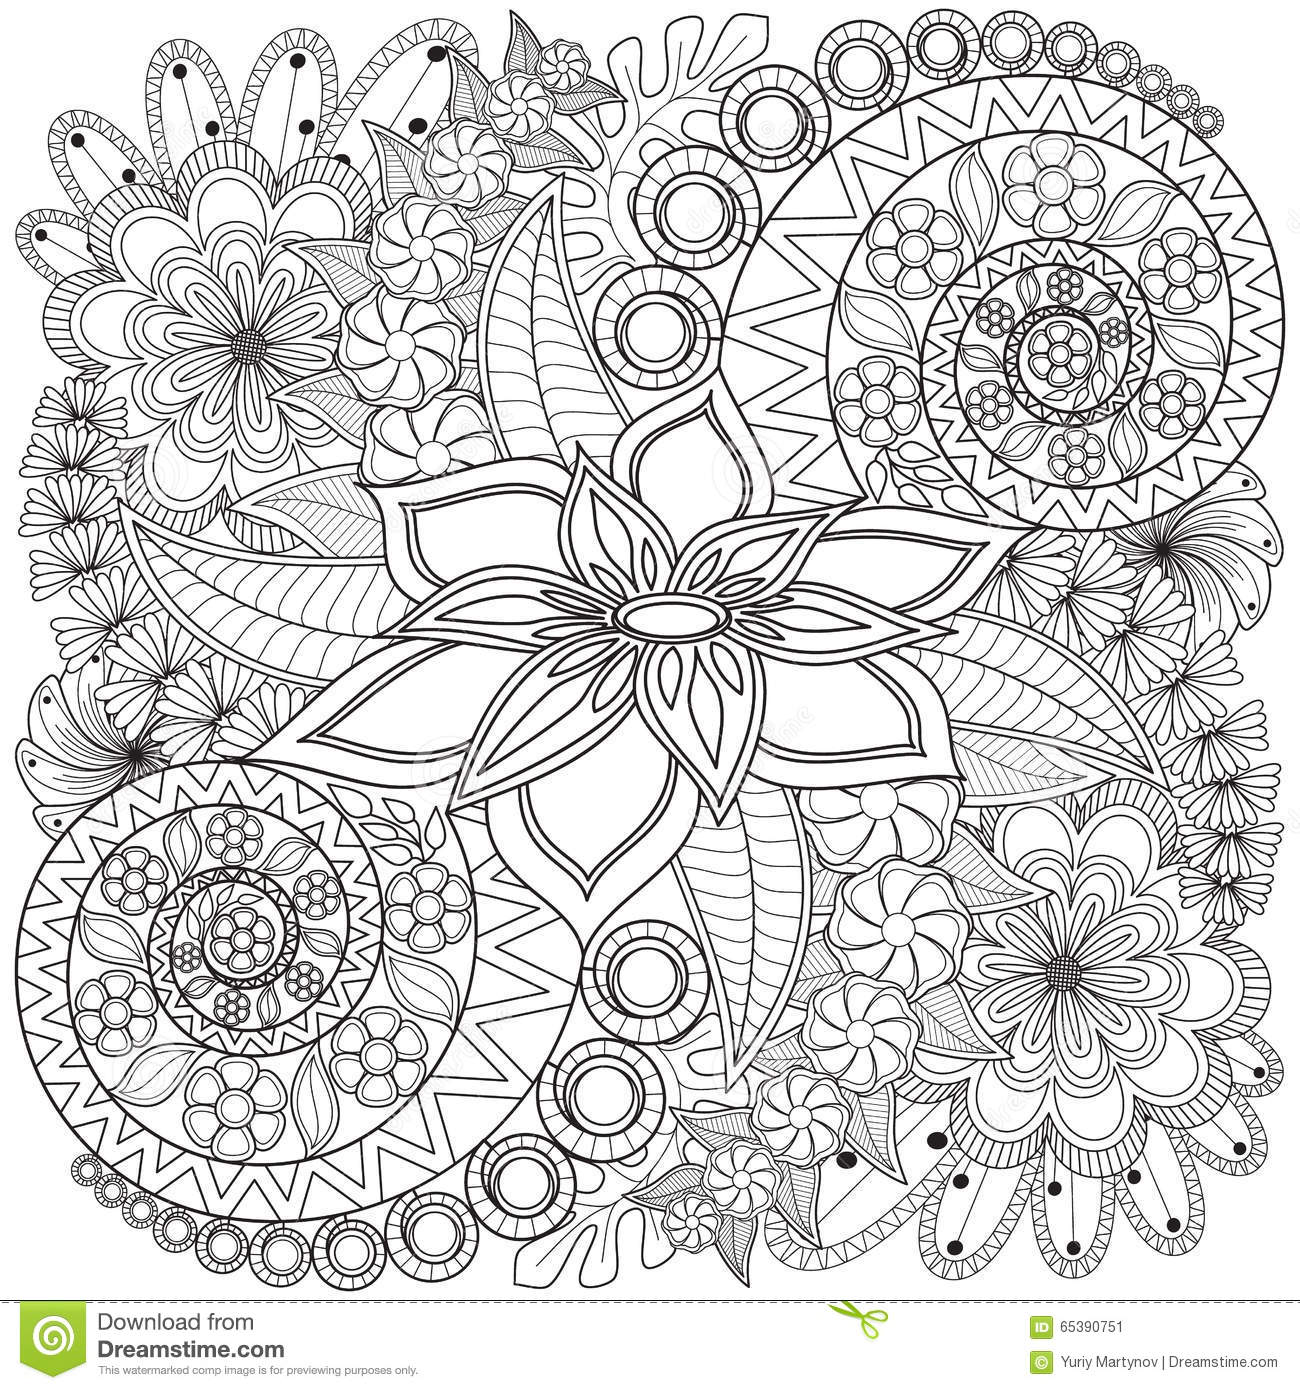 flower swirl coloring page pattern stock image image of book